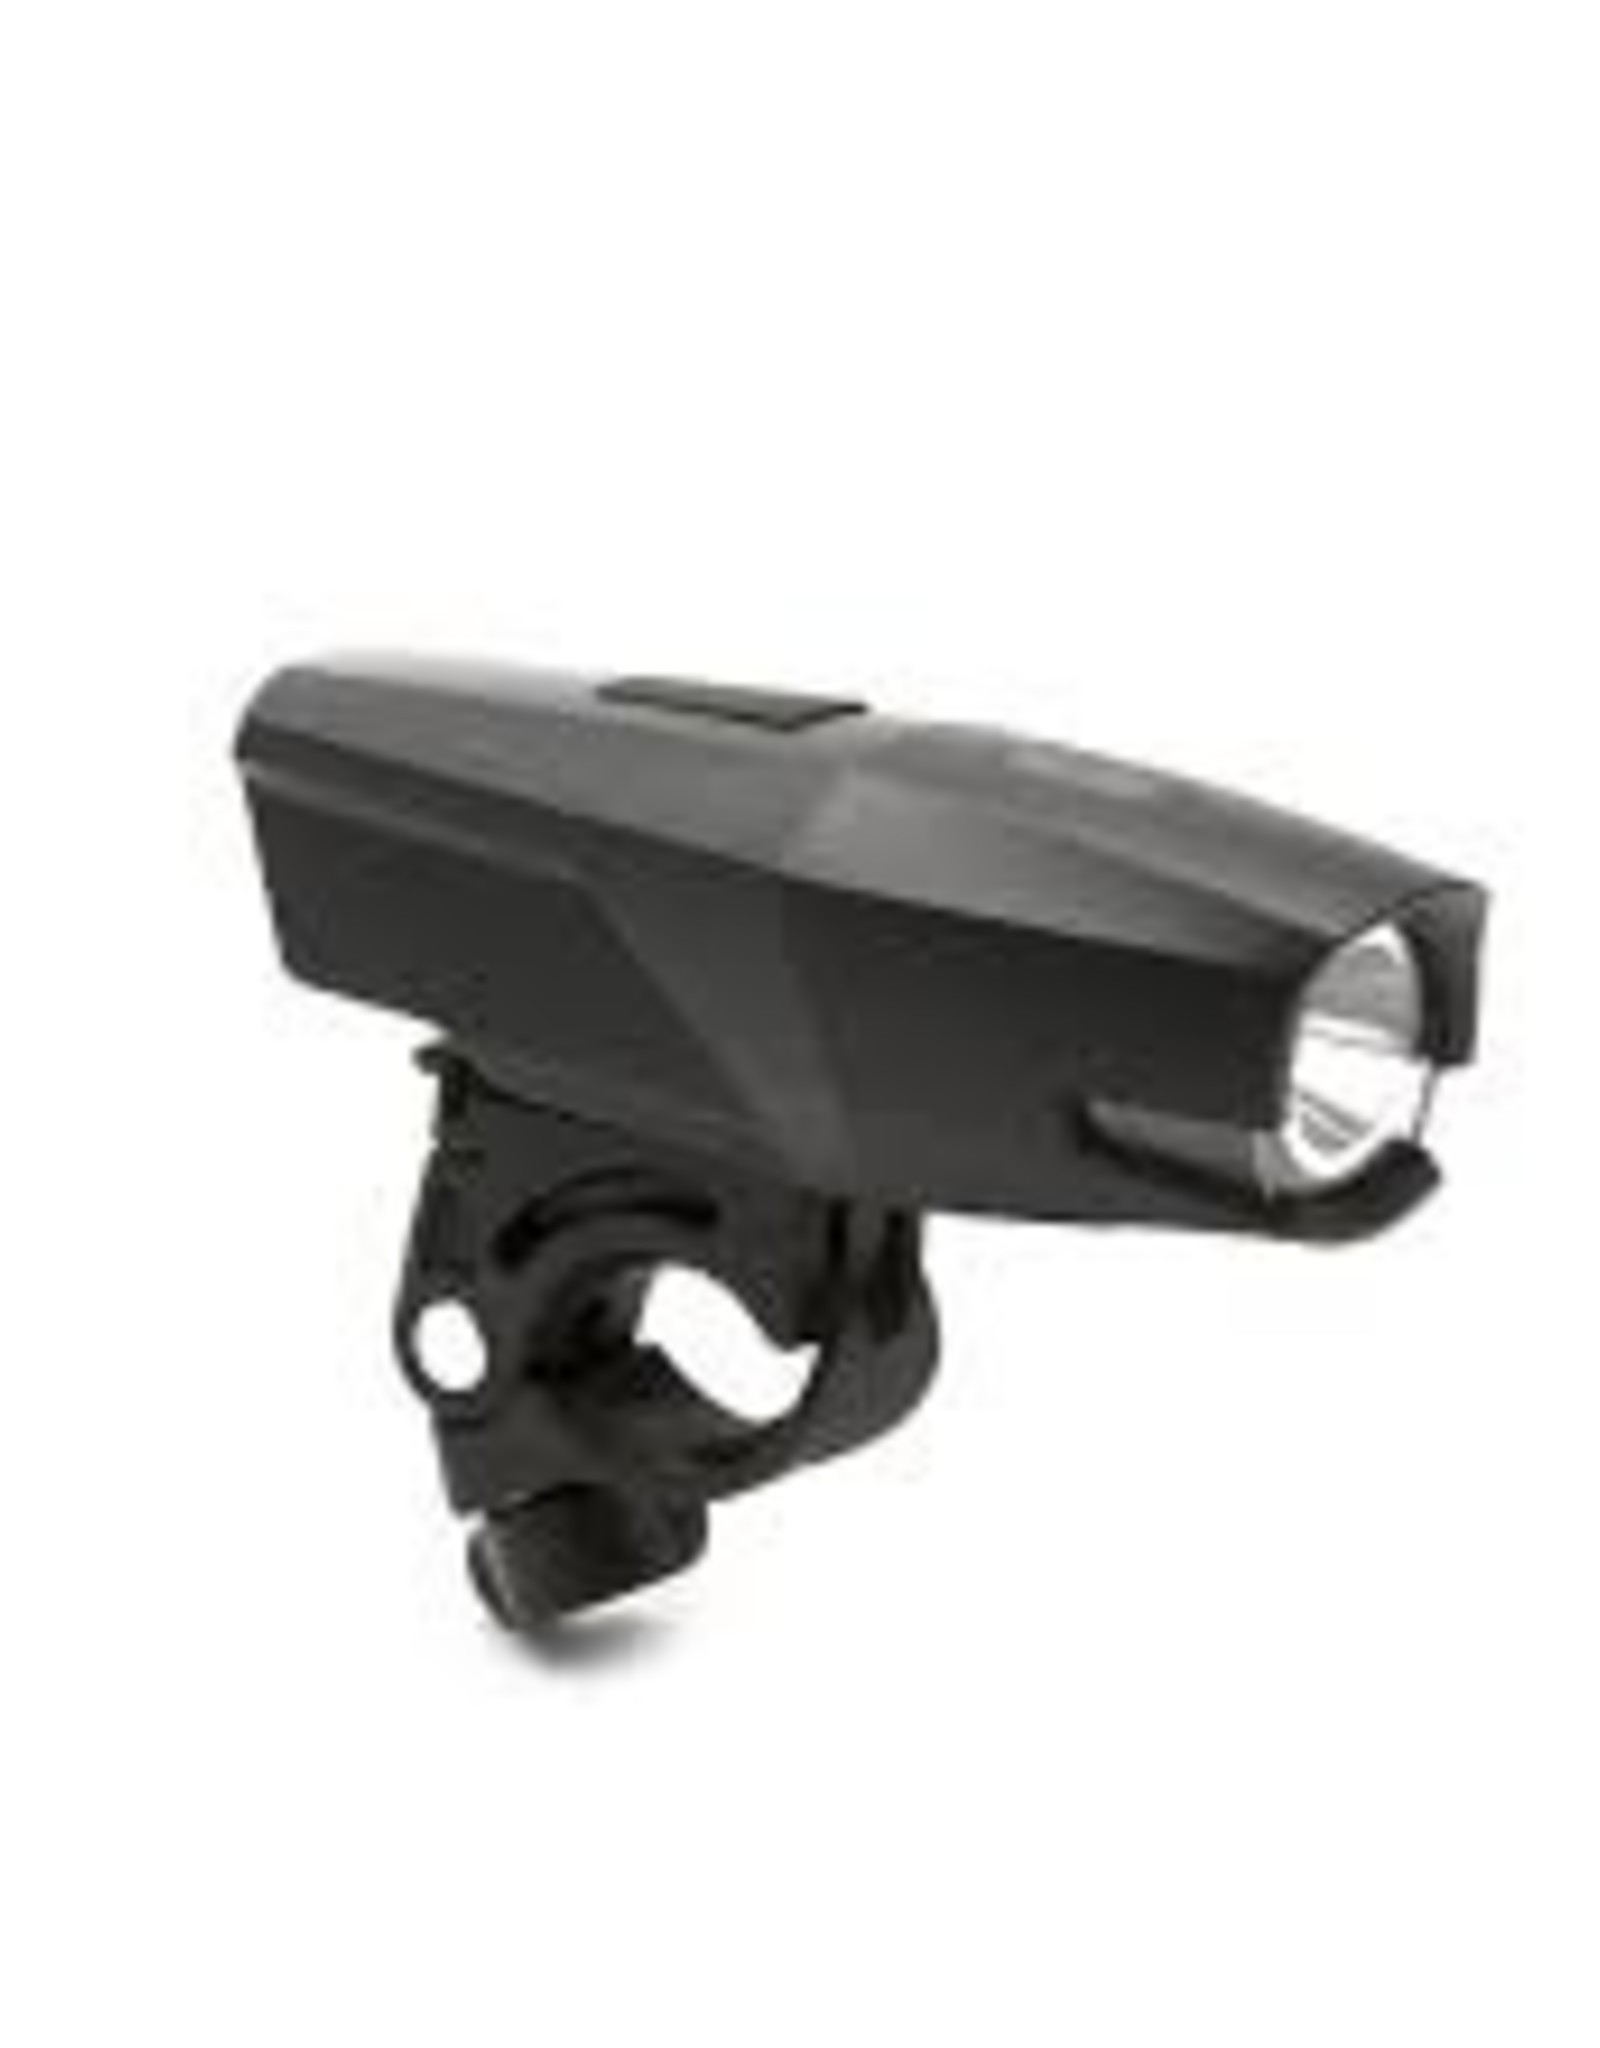 PDW PDW City Rover 500 USB Rechargeable Headlight